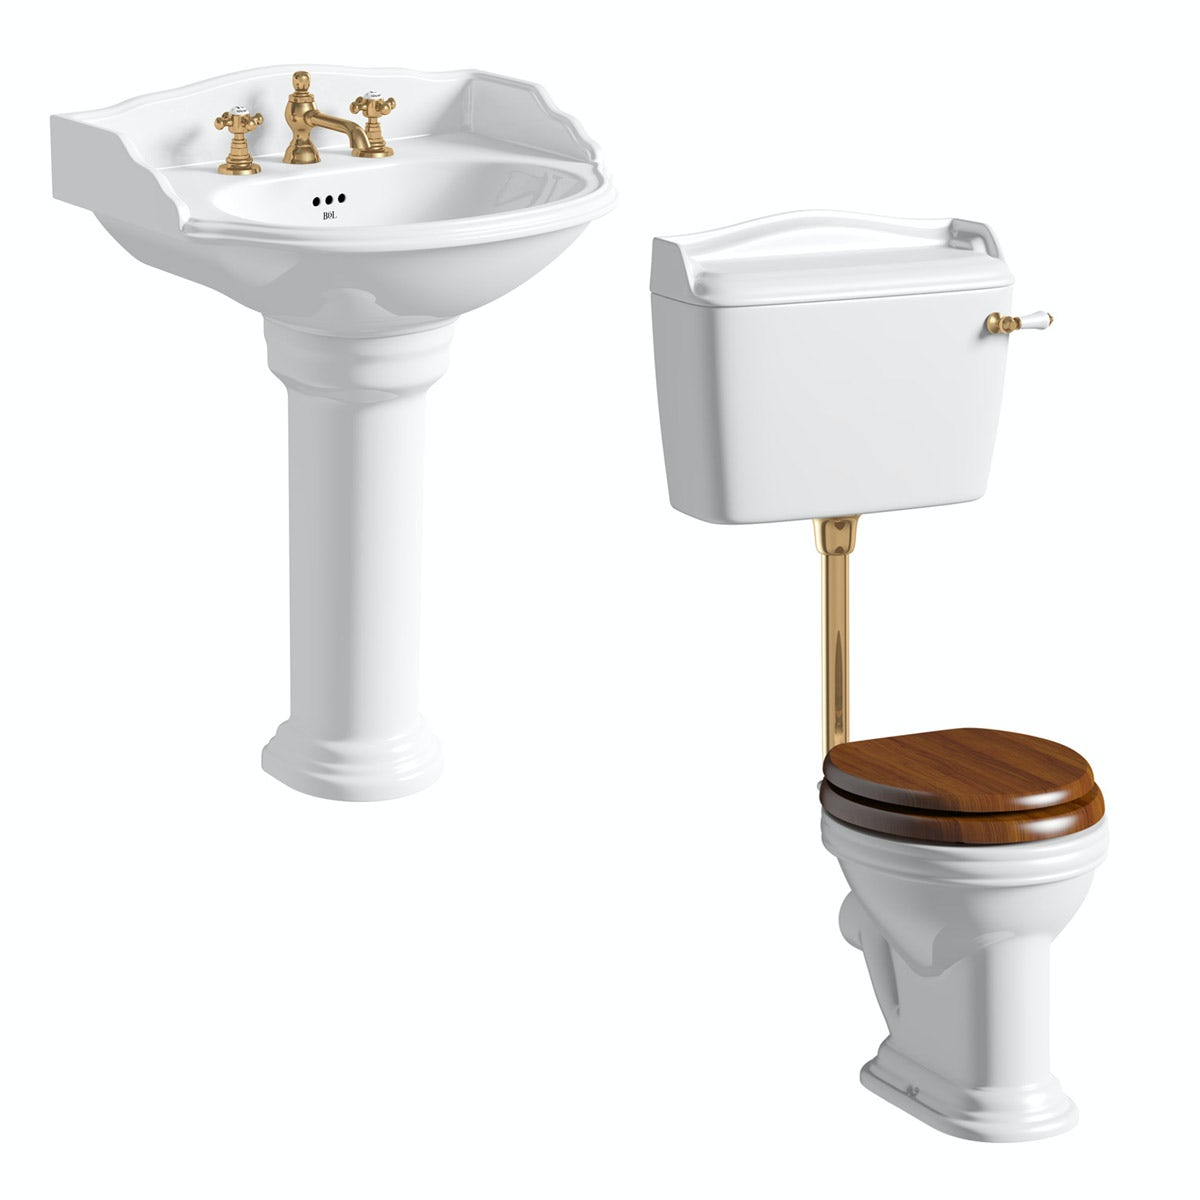 Belle de Louvain Bellini low level toilet and full pedestal suite with incalux fittings and taps